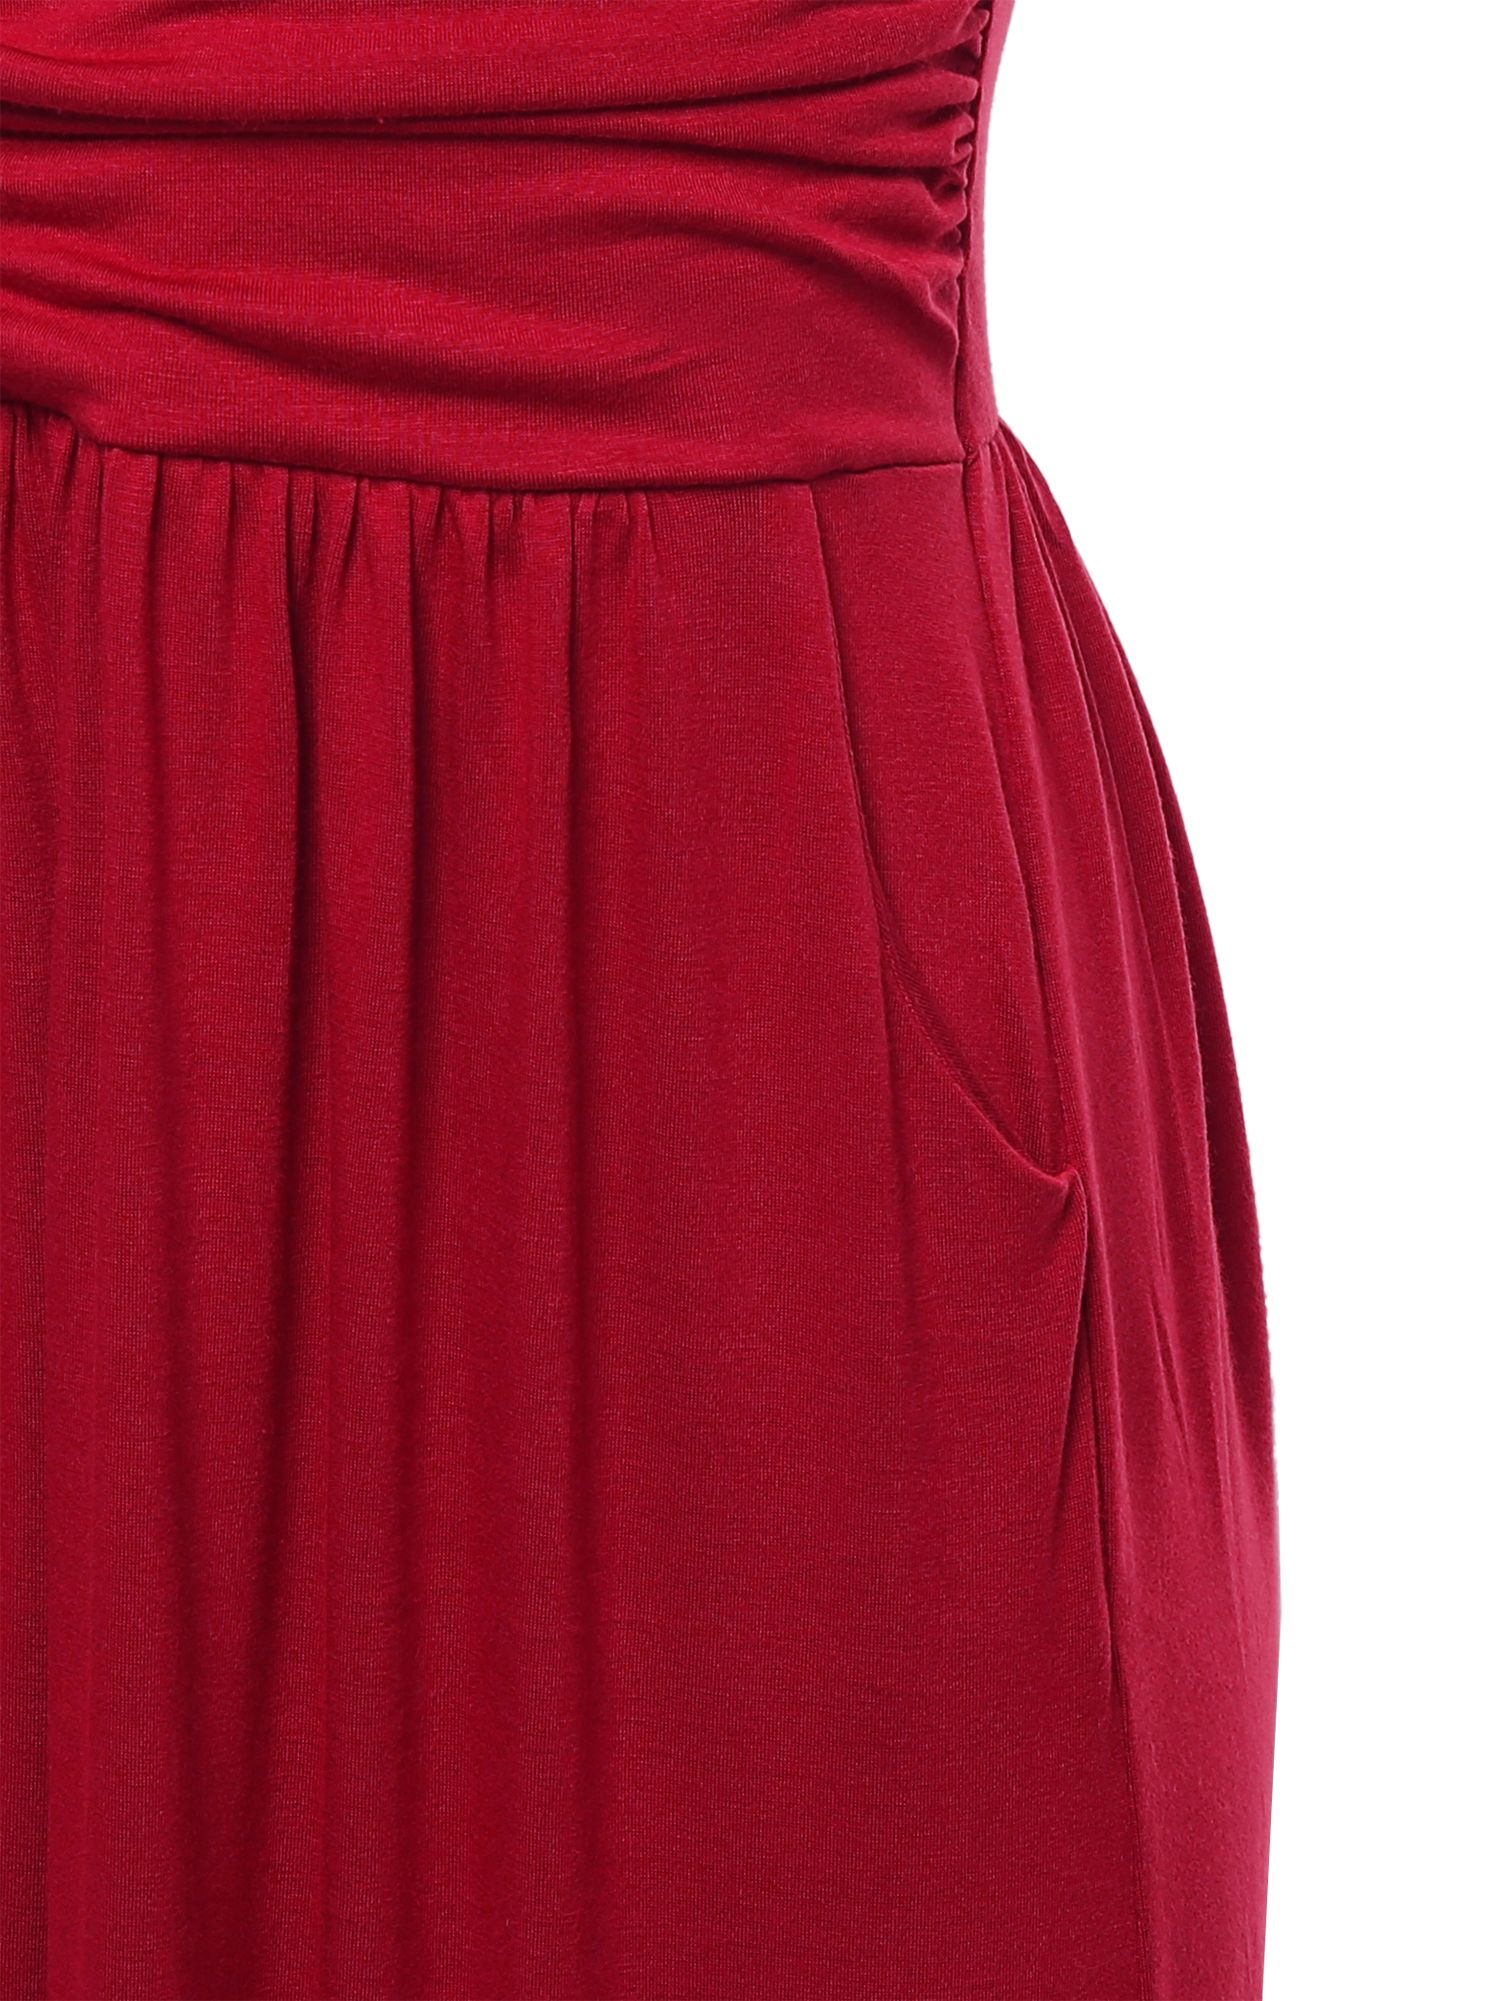 A2y A2y Women S Solid Viscose Tube Top Double Layer Side Pockets Maxi Dress Dark Red M Walmart Com Pocket Maxi Dress Tube Maxi Dresses Maxi Dress [ 2001 x 1500 Pixel ]